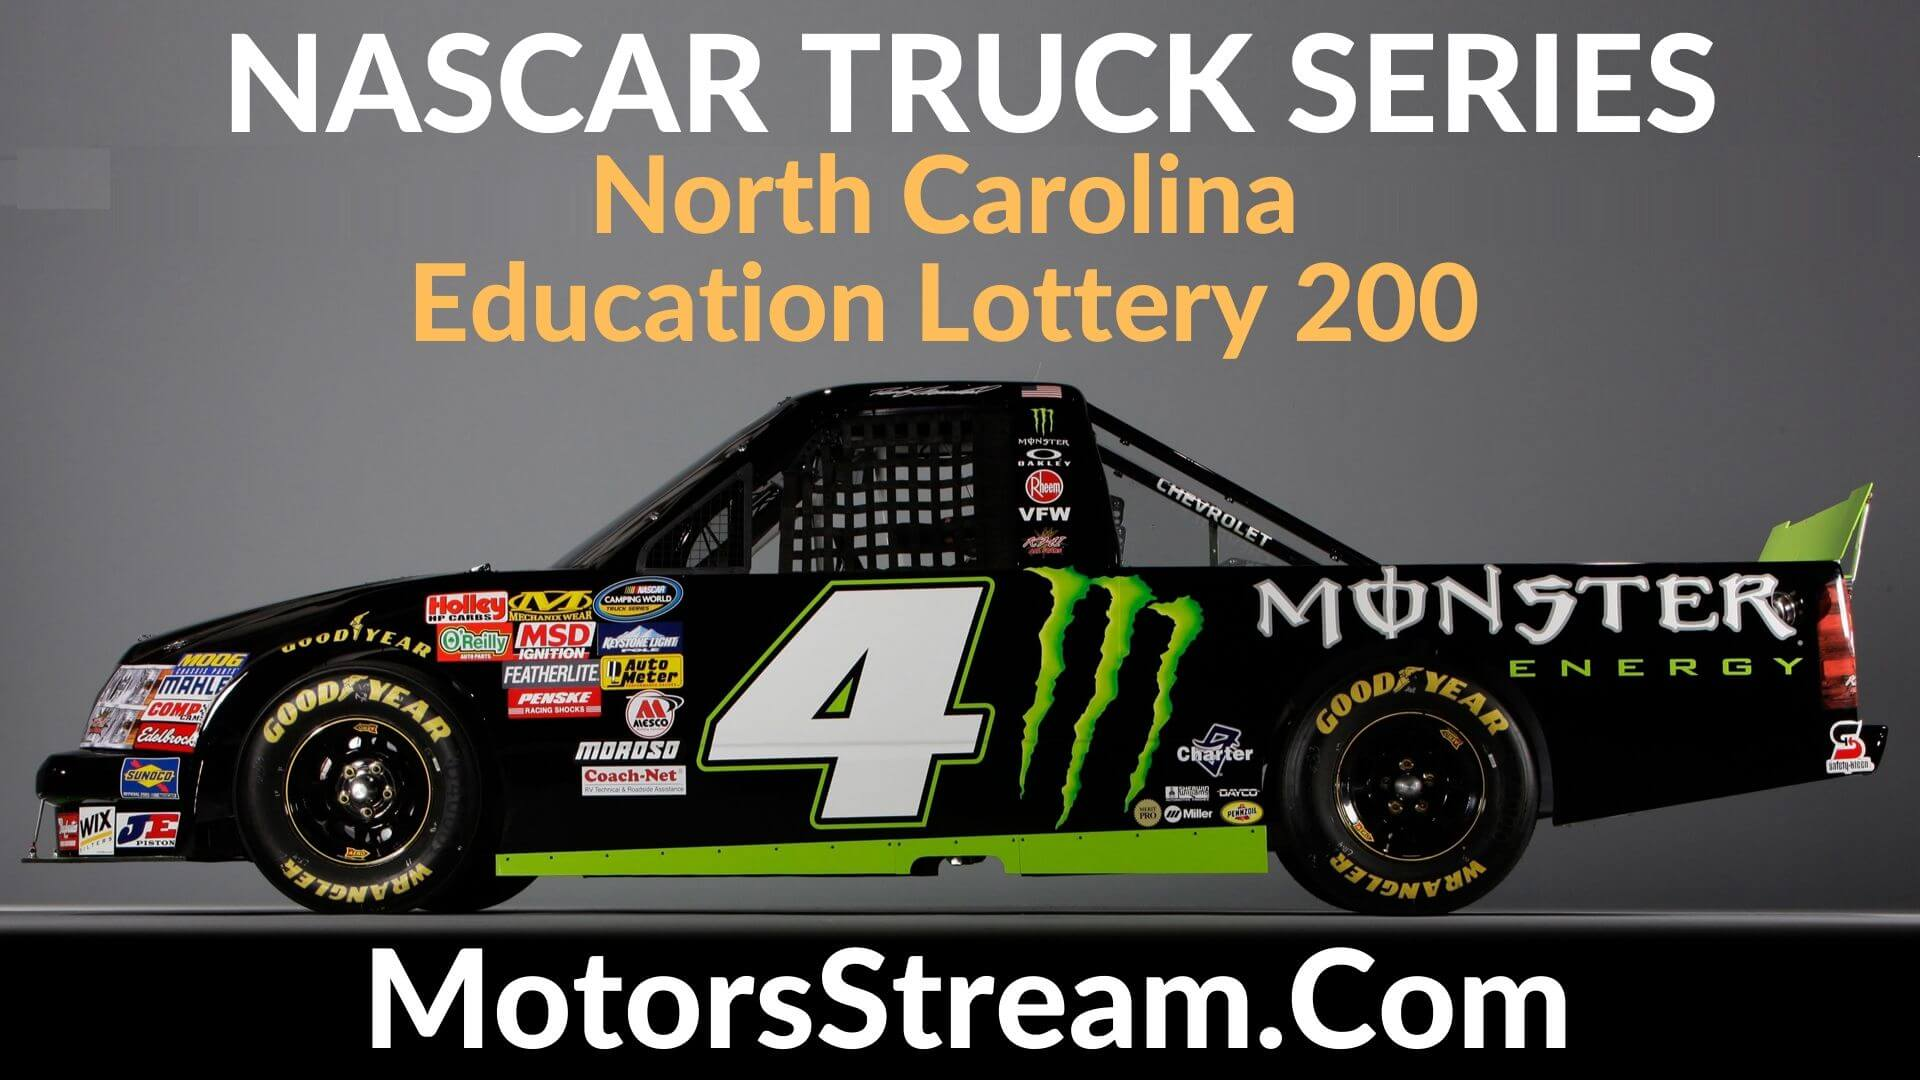 north-carolina-education-lottery-200-nascar-truck-charlotte-live-stream